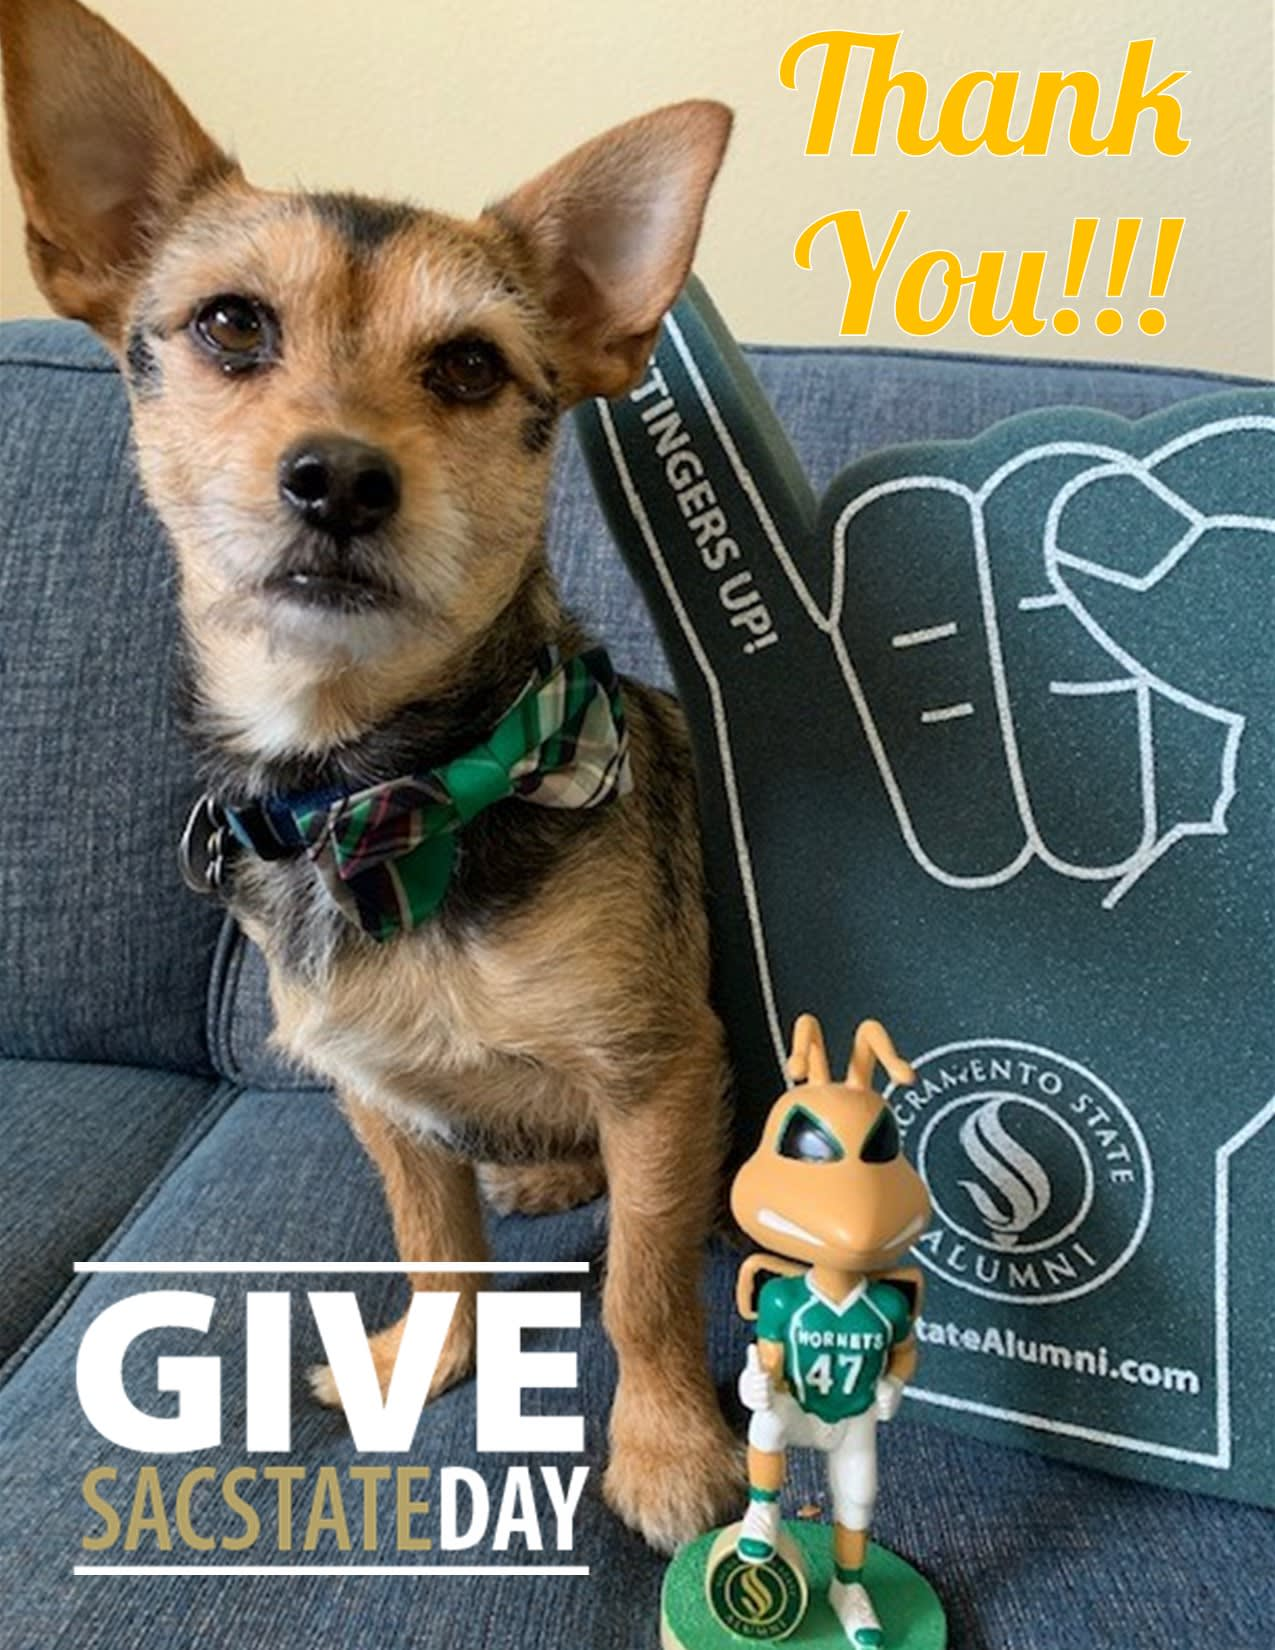 Image for Update: The most successful Give Sac State Day yet, thanks to YOU!